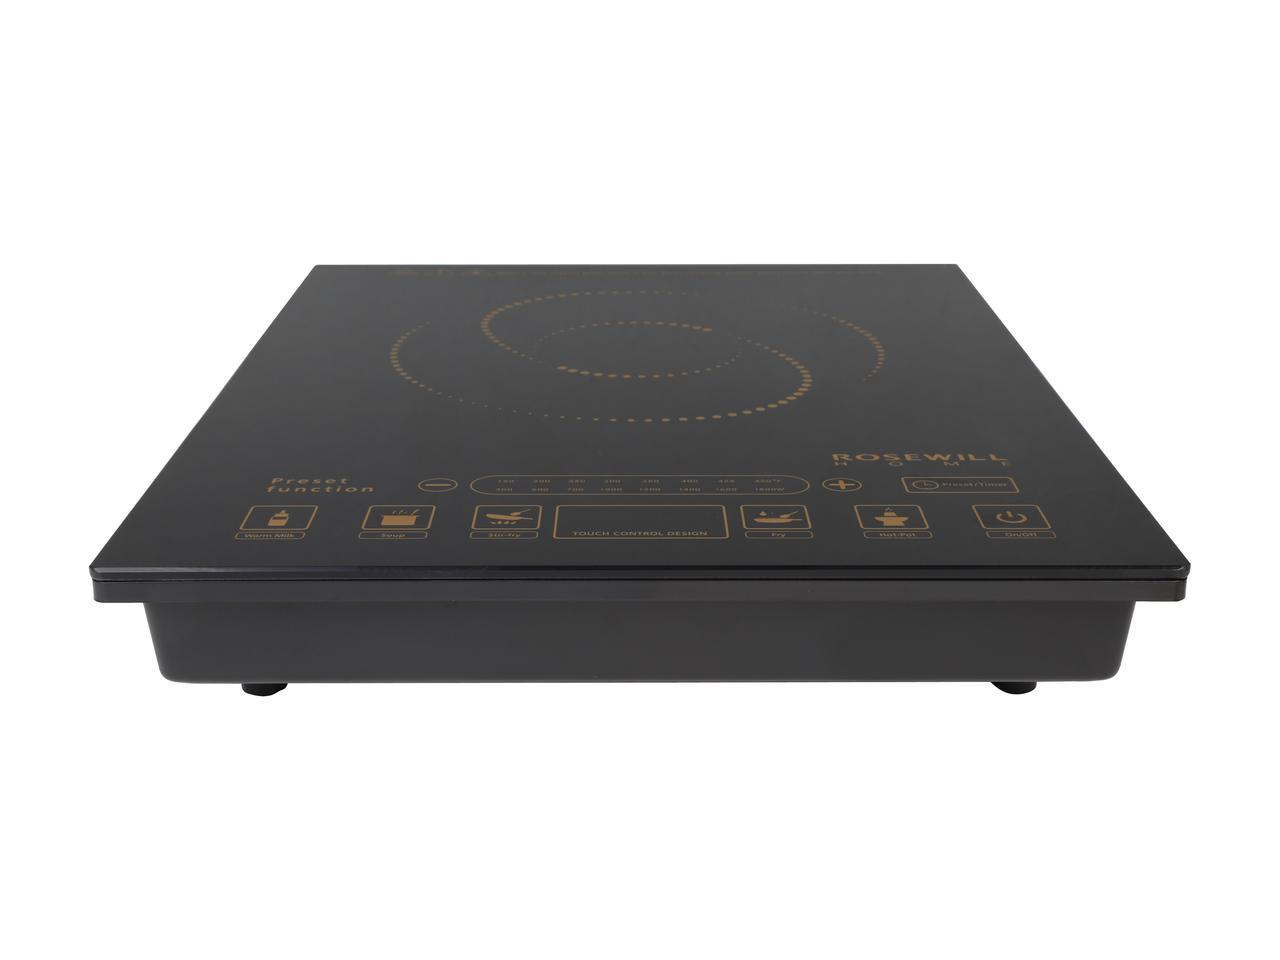 Rosewill RHAI-16002 1800-Watt 5 Pre-Programmed Settings Induction Cooker Cooktop with Stainless Steel Pot